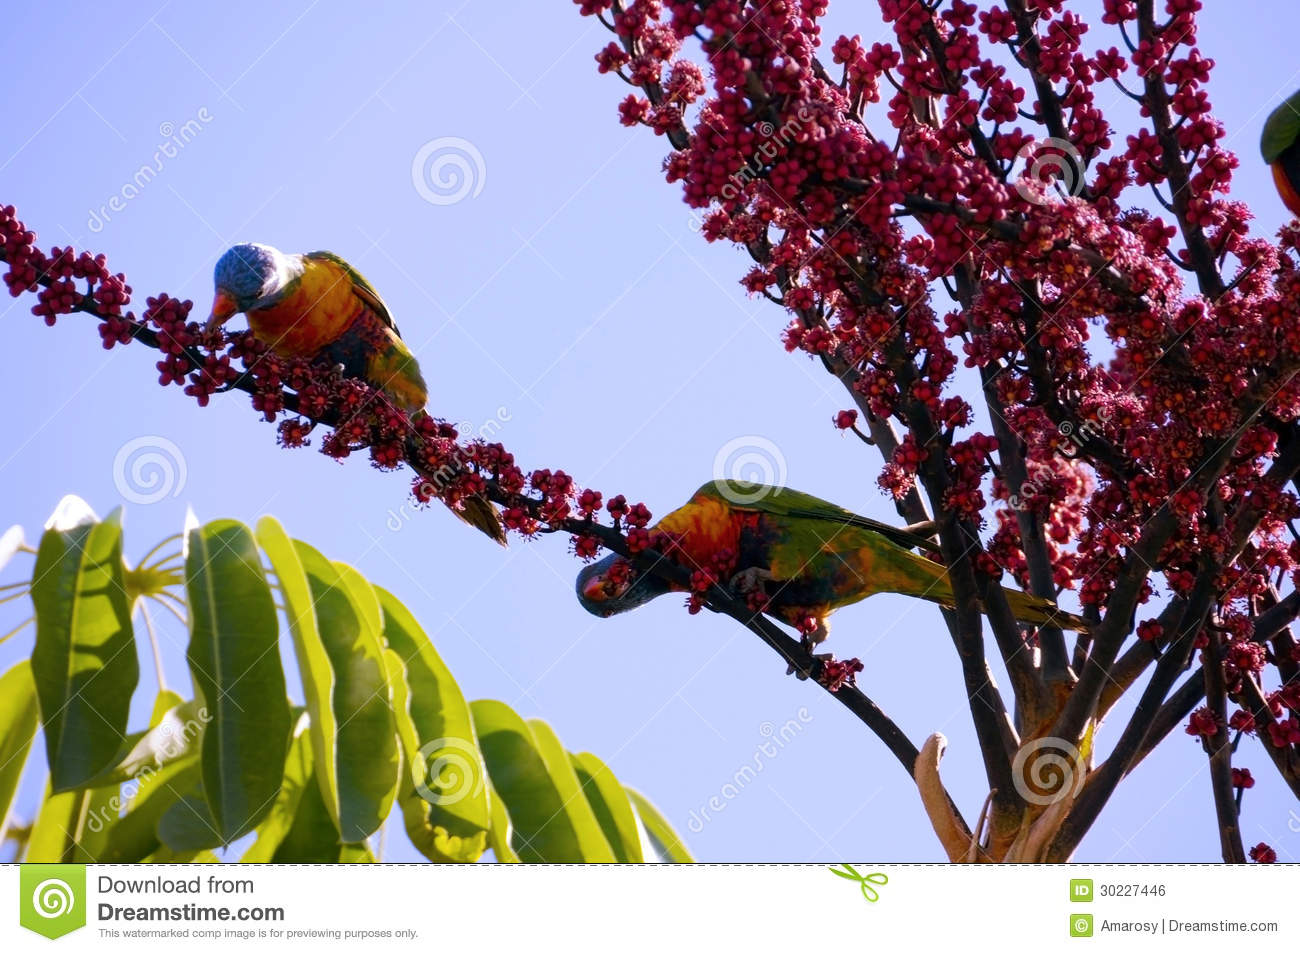 Australian native fauna rosella rainbow lorikeet parrot birds royalty free stock image image - Planting fruit trees in autumn ...